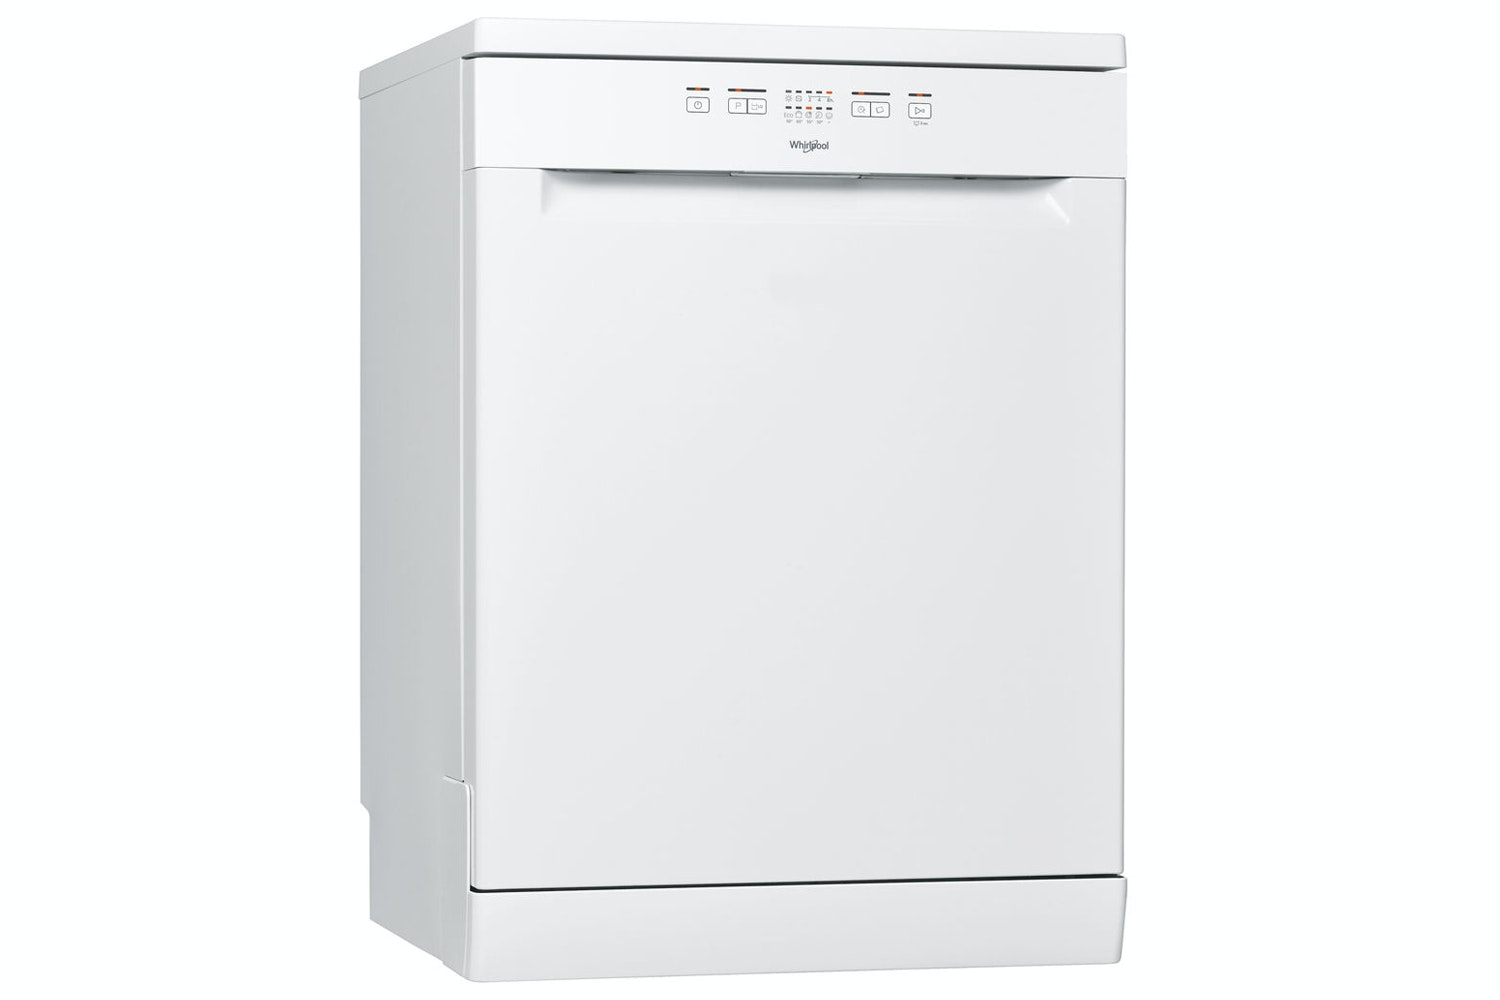 Whirlpool Freestanding Dishwasher | 13 Place | WFE2B19UK